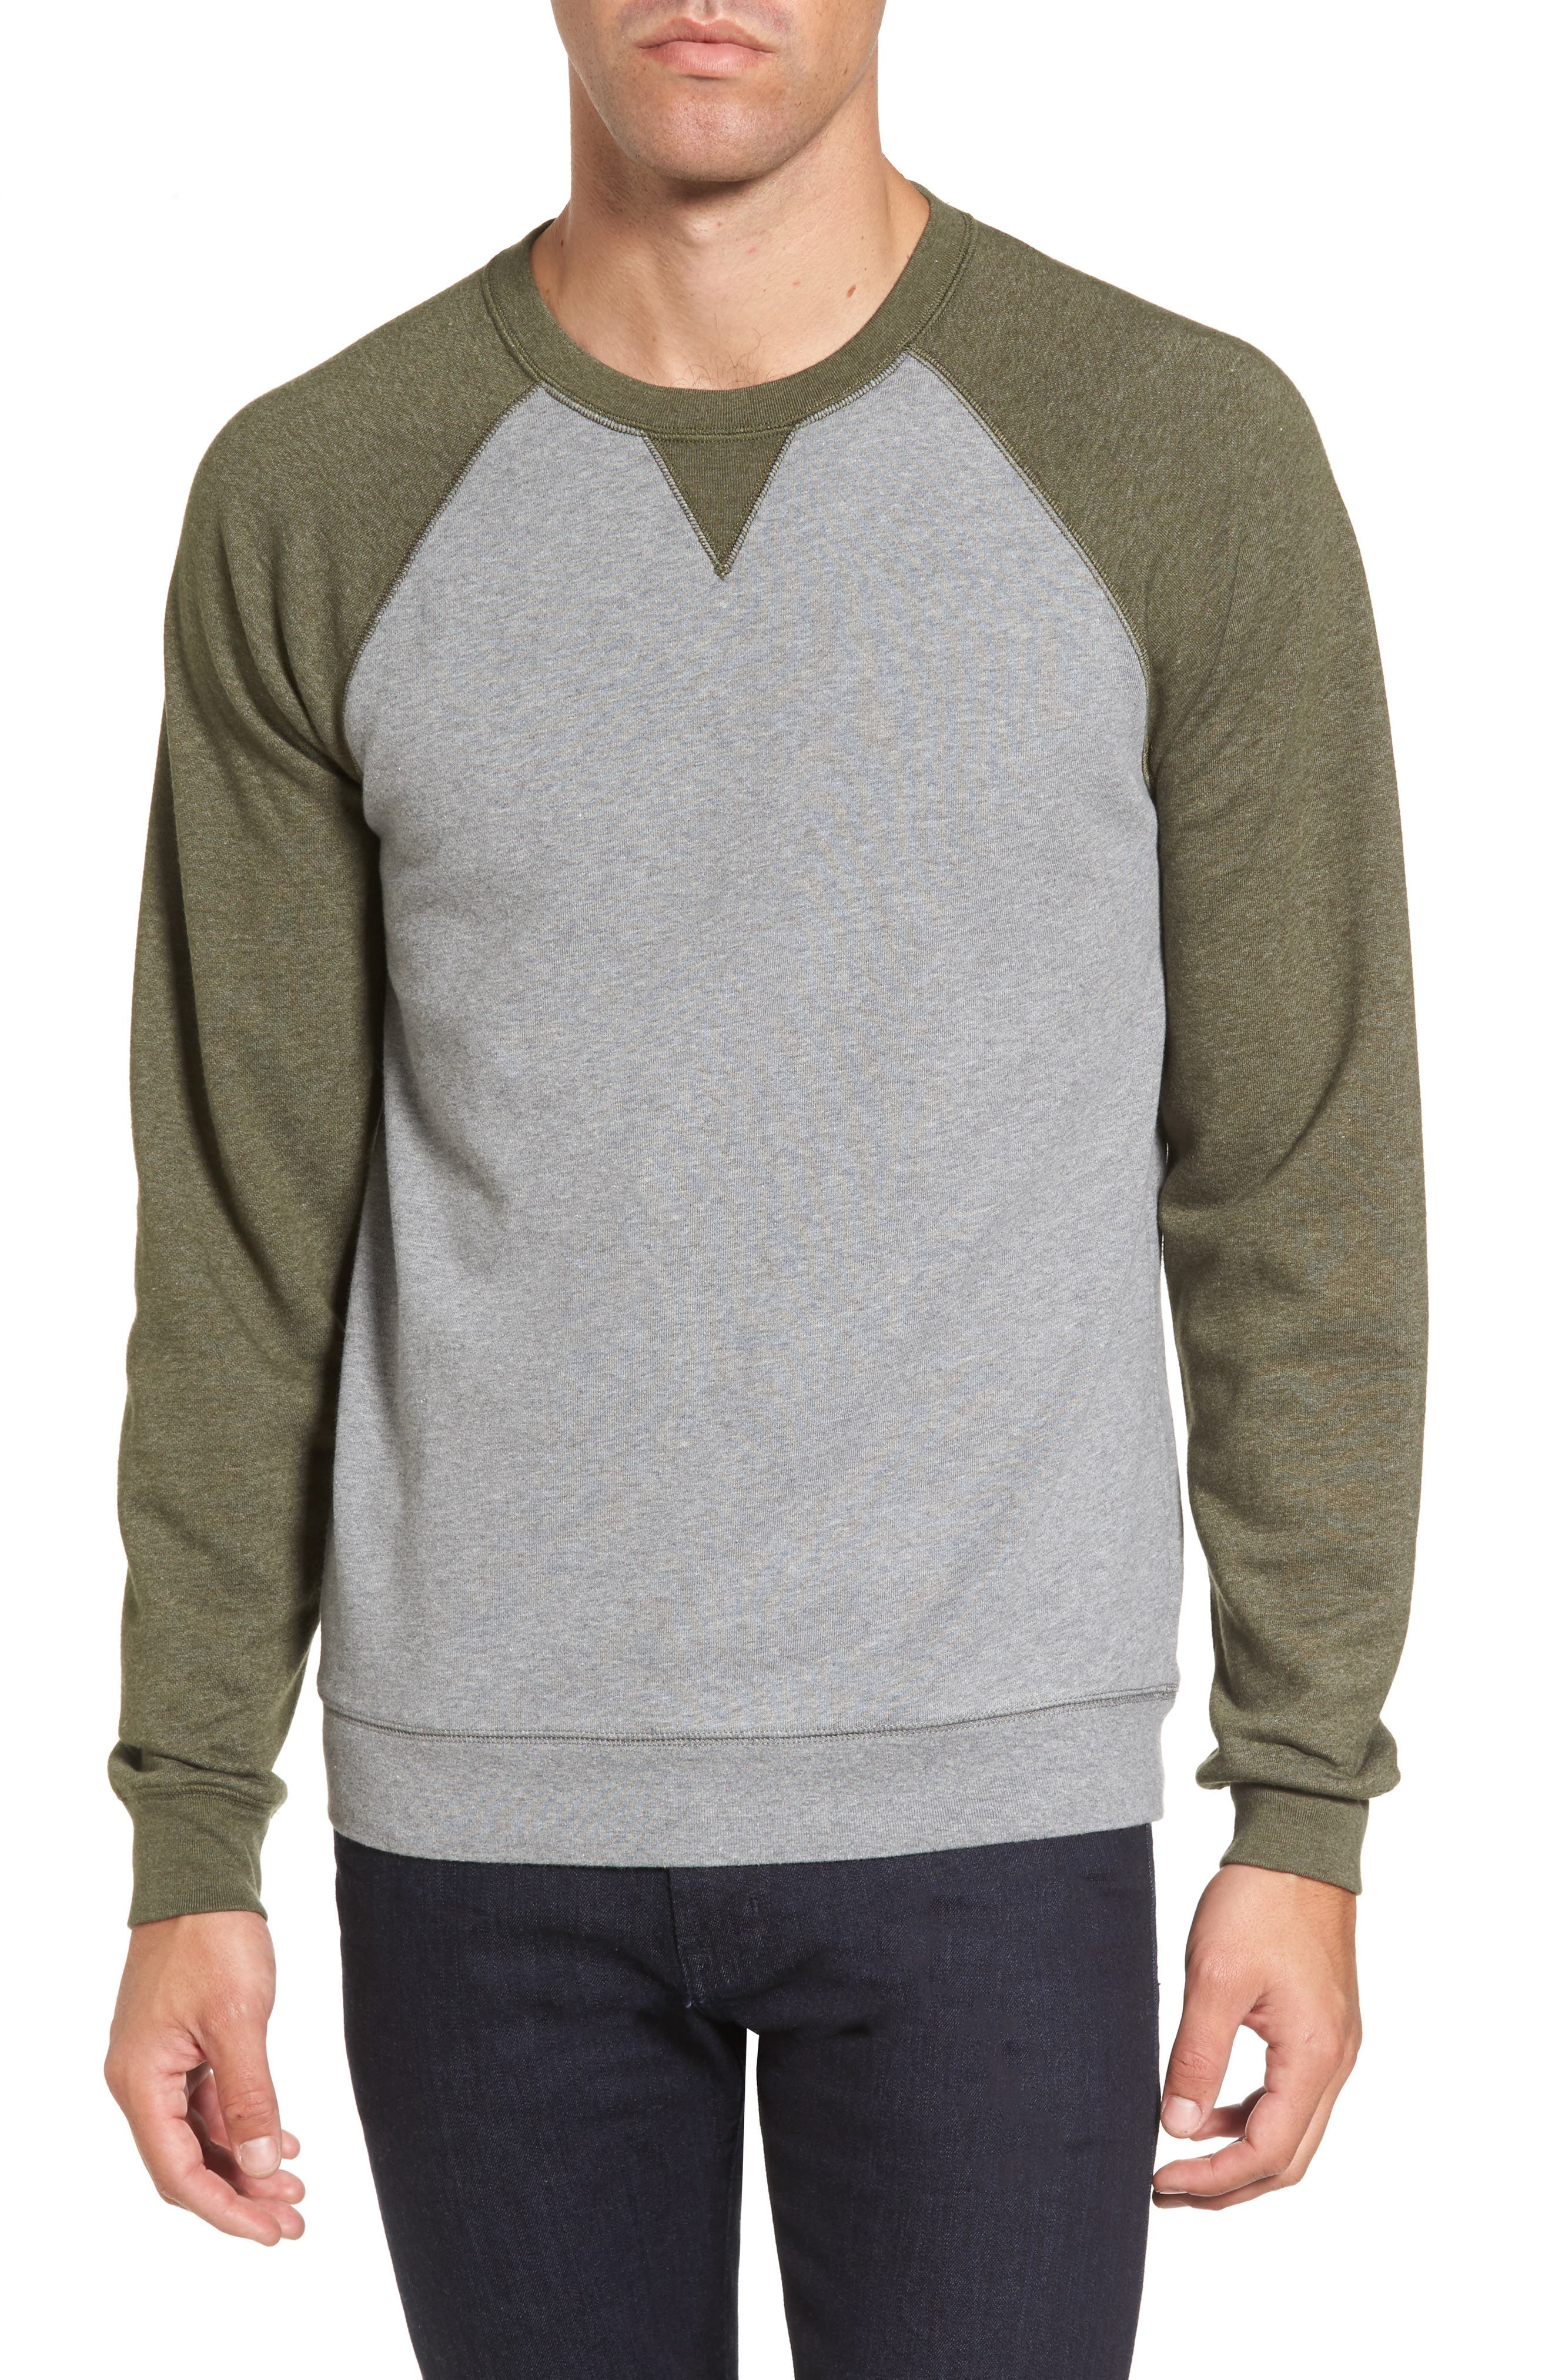 Colorblock French Terry Sweatshirt,                             Main thumbnail 1, color,                             Med Grey Army Heather